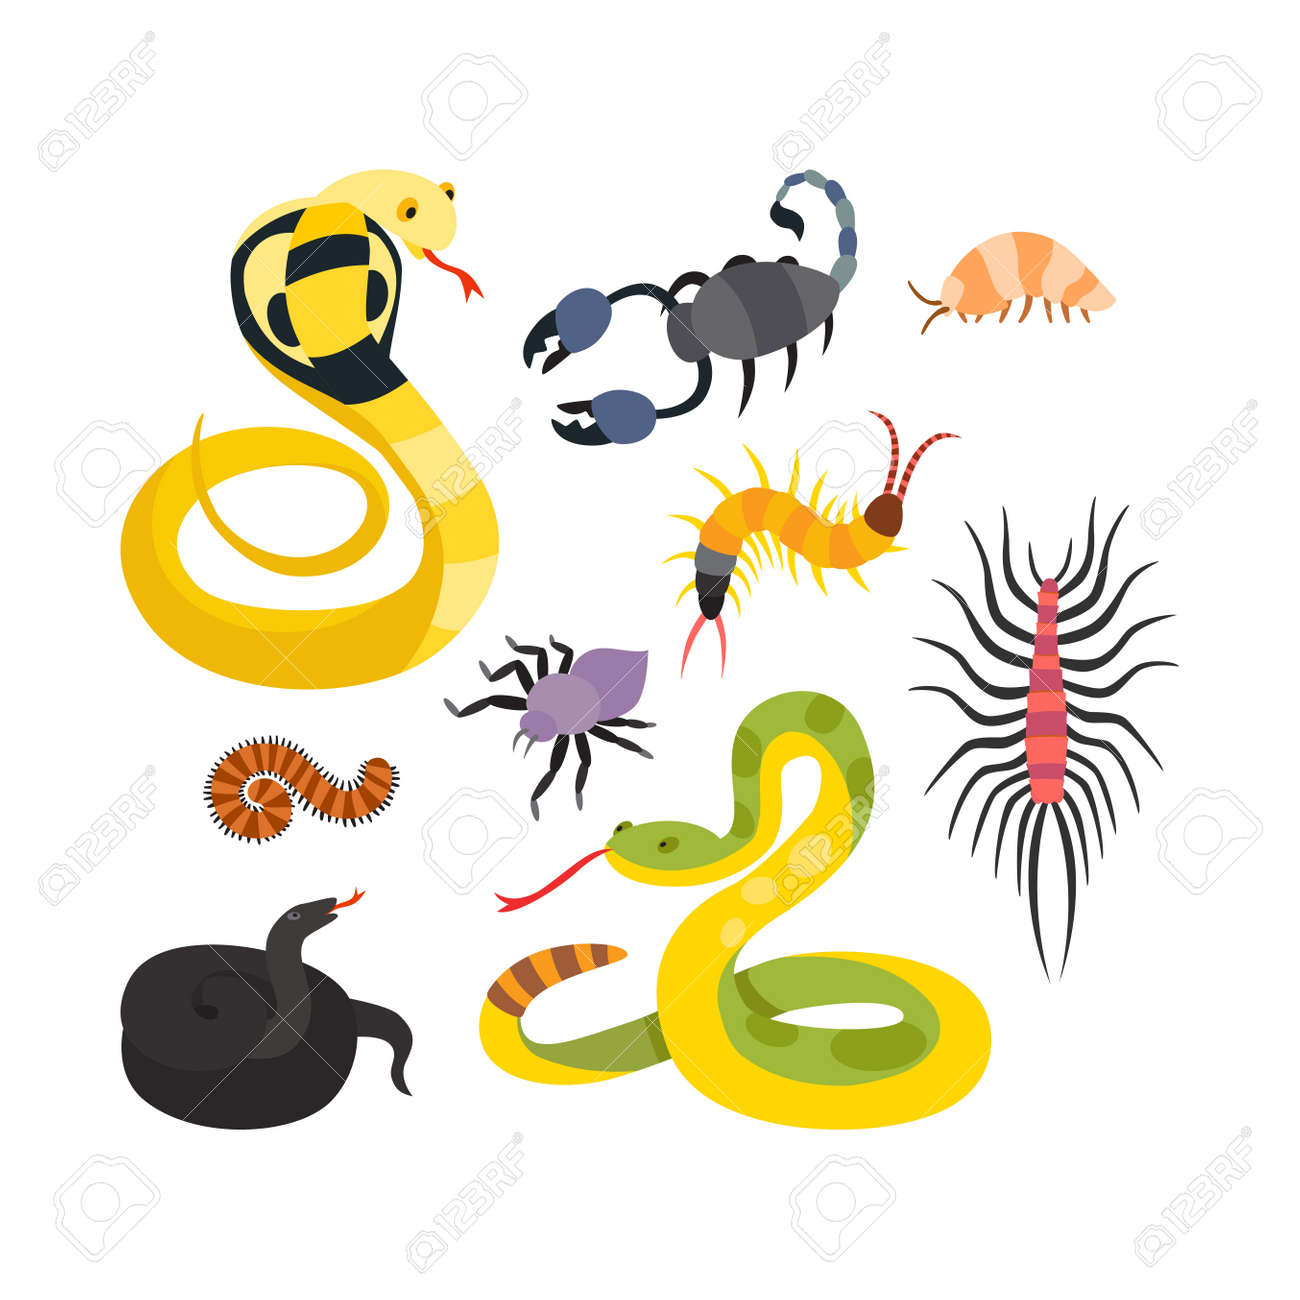 Image of: Africa Stock Photo Vector Flat Snakes And Other Danger Animals 123rfcom Vector Flat Snakes And Other Danger Animals Stock Photo Picture